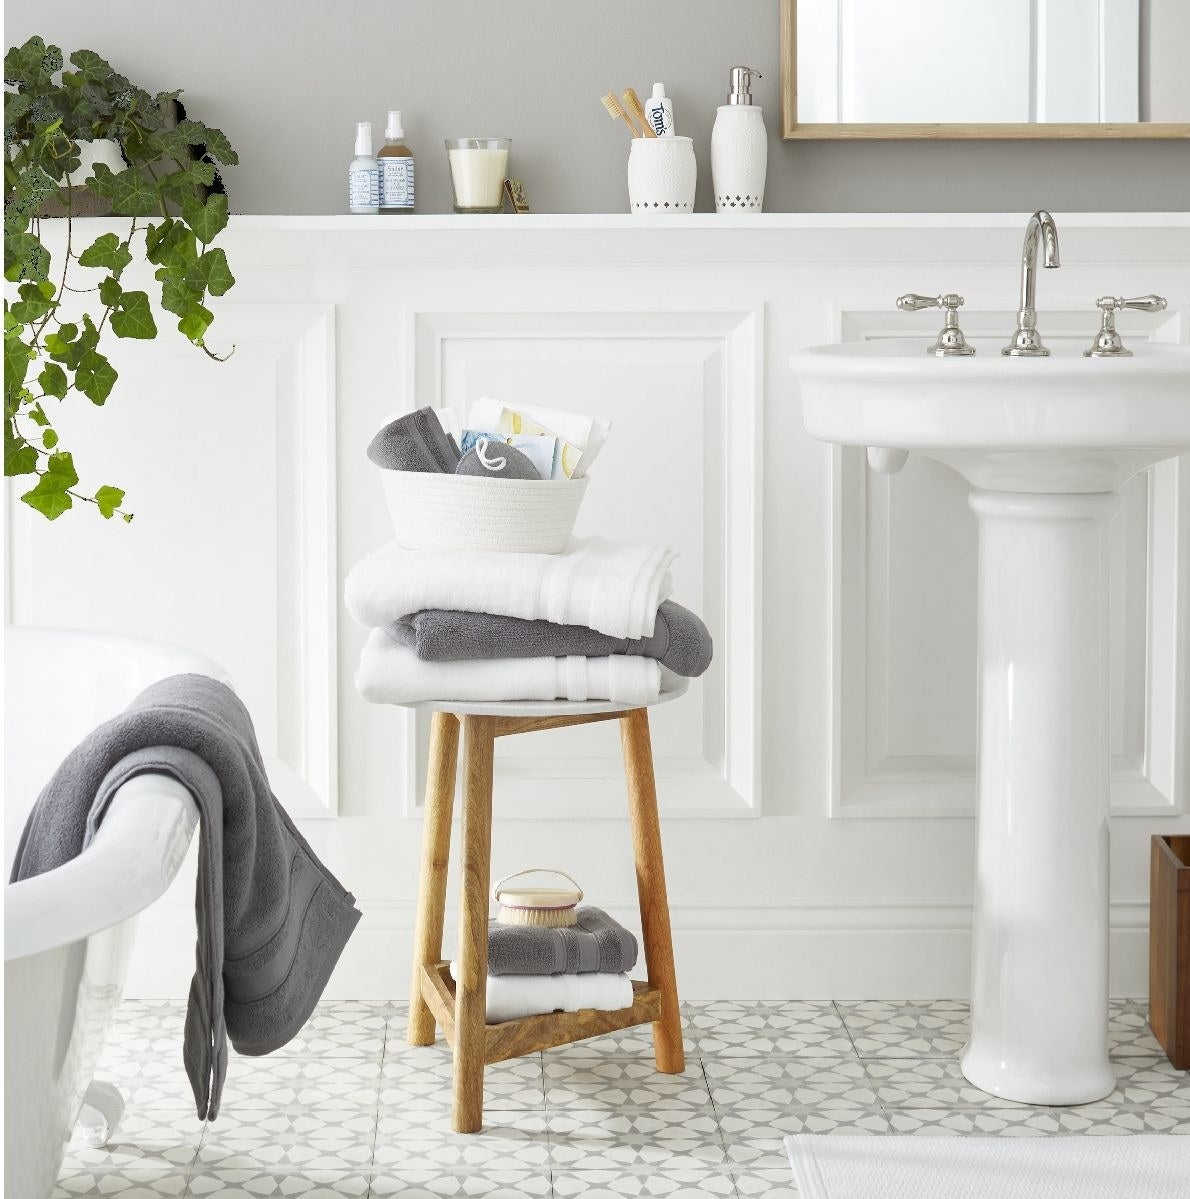 Wood and marble side table with gray and white towels stacked on top